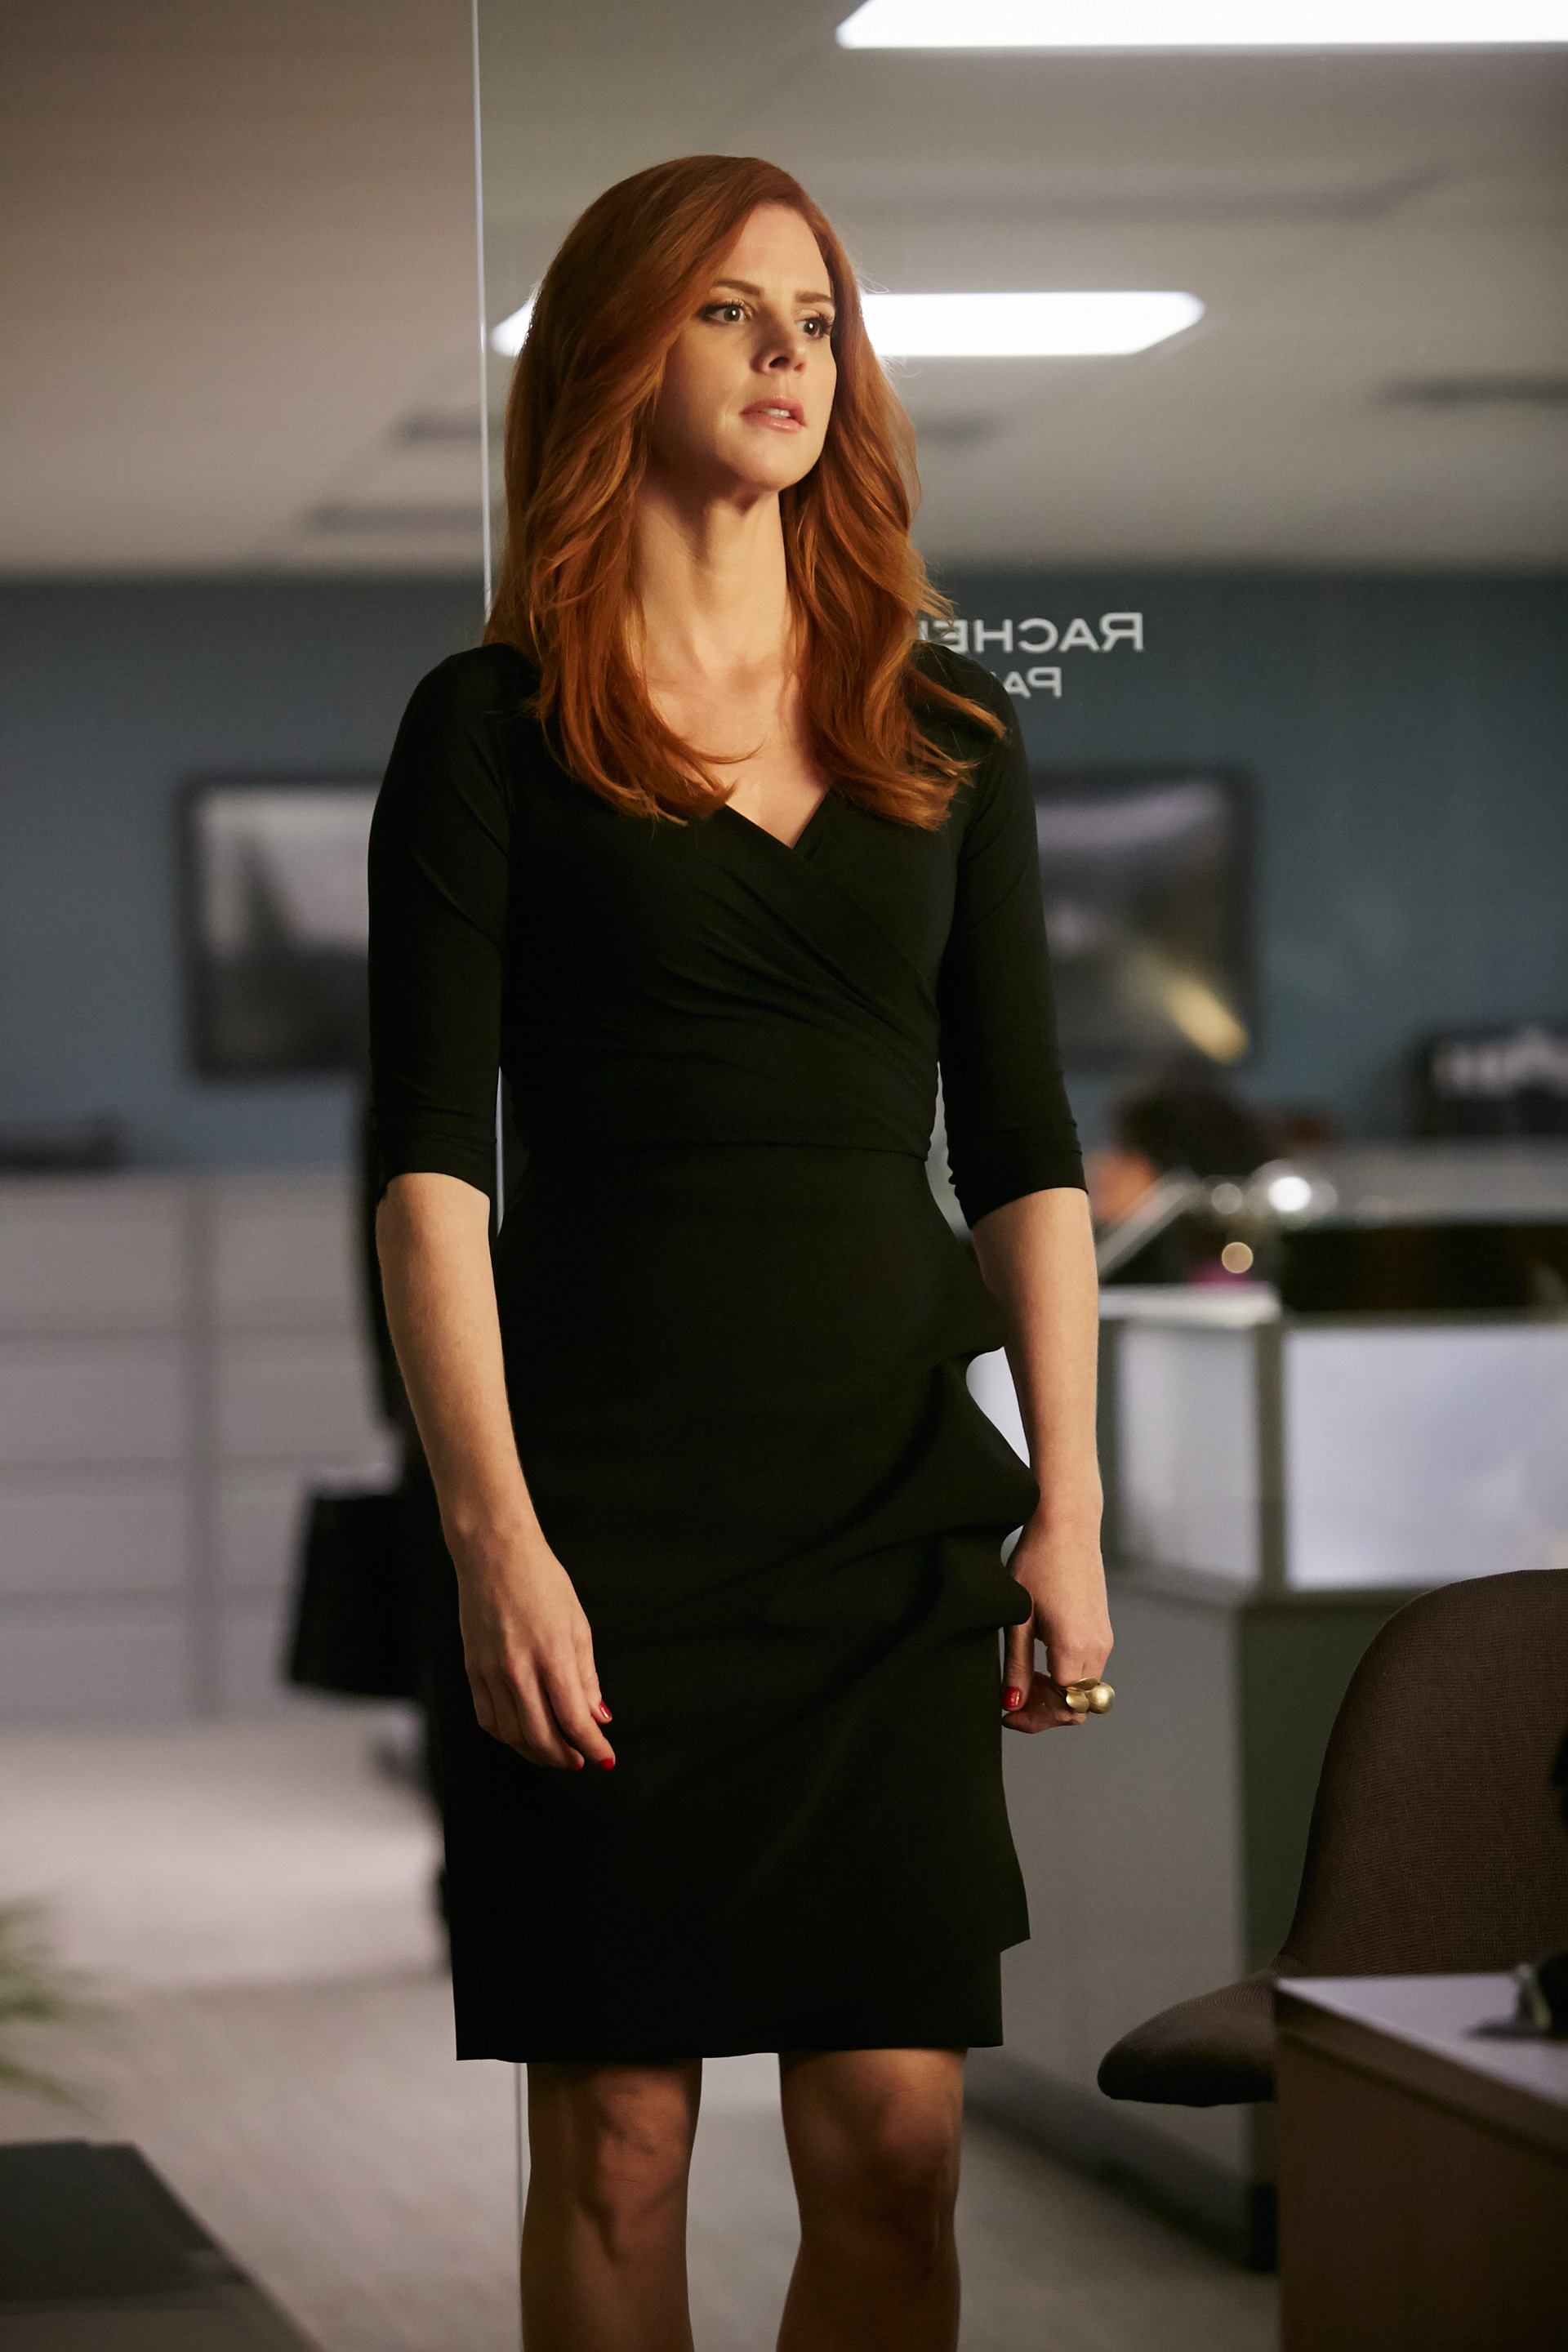 Exclusive fashion photos from Suits: Black wrap dress